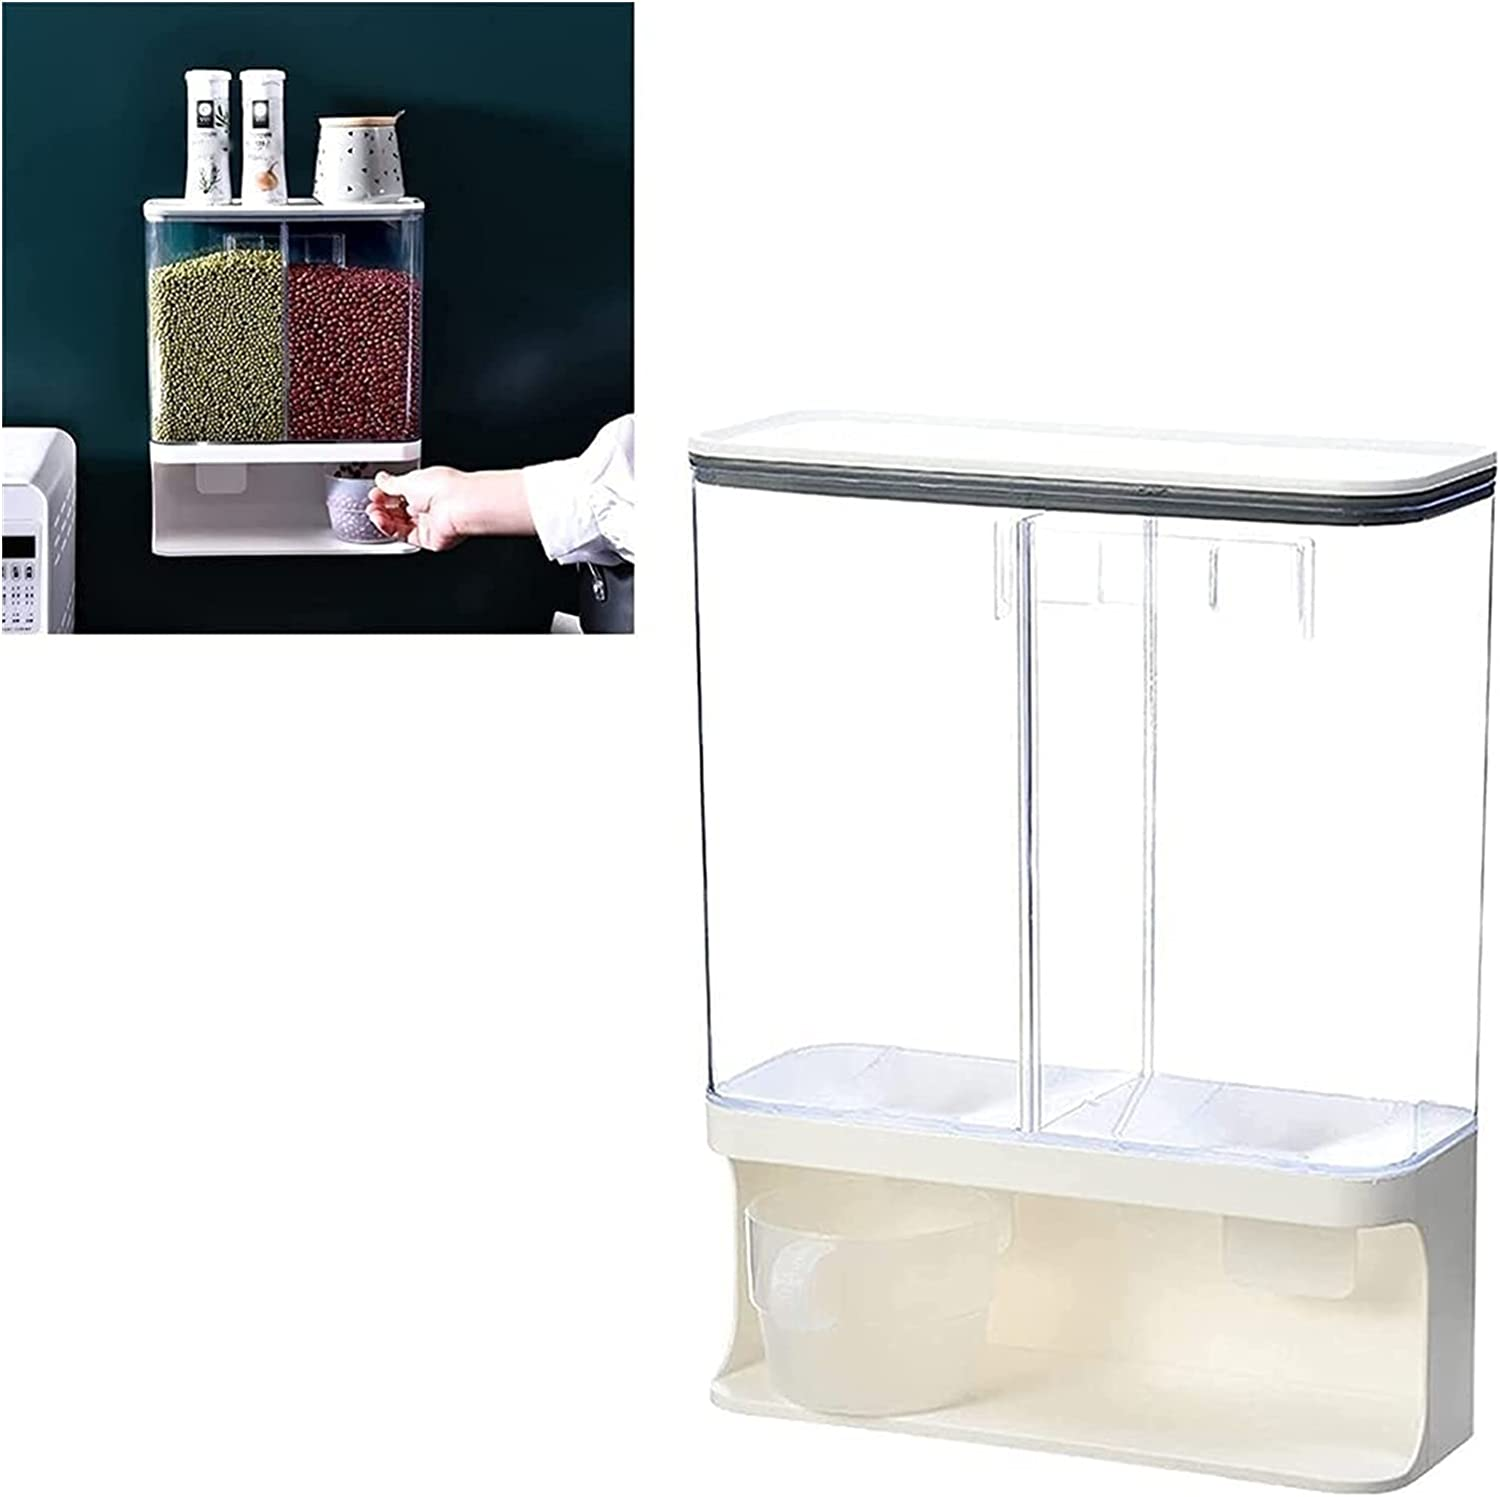 1 1.5 3 L Dual Challenge the lowest price of Japan ☆ Dispenser Cereal Cheap mail order sales Plastic Dry Clear Food